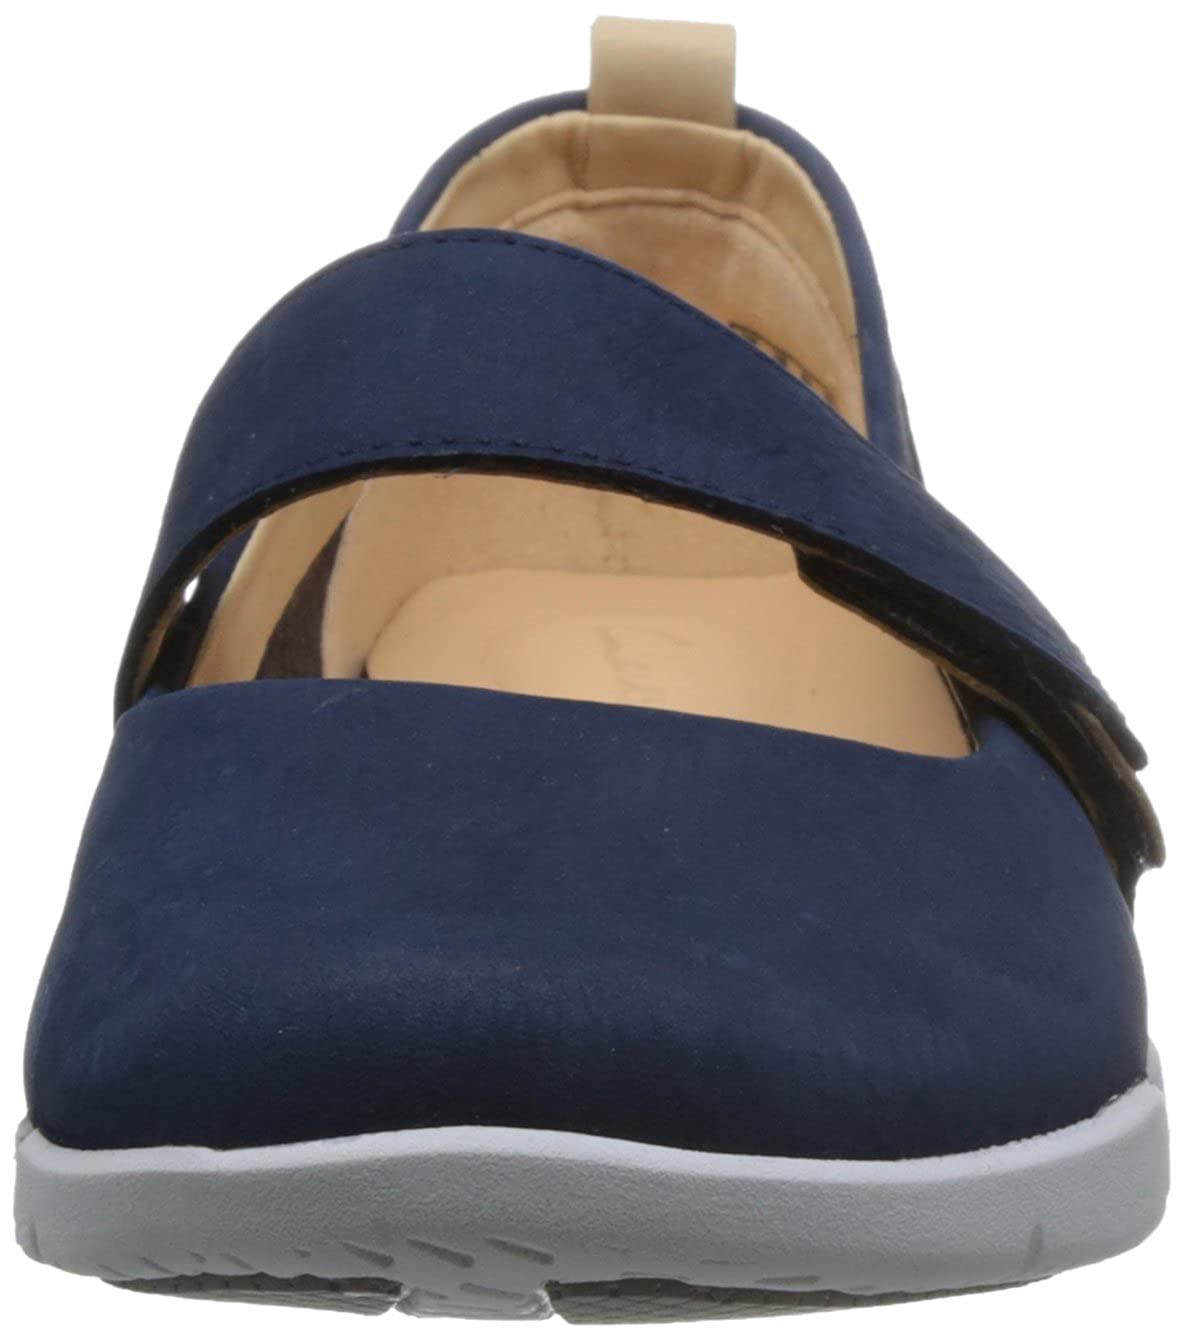 Clarks Tri Tri Clarks Carrie Womens Wide-Fit Babette  - 759dcb